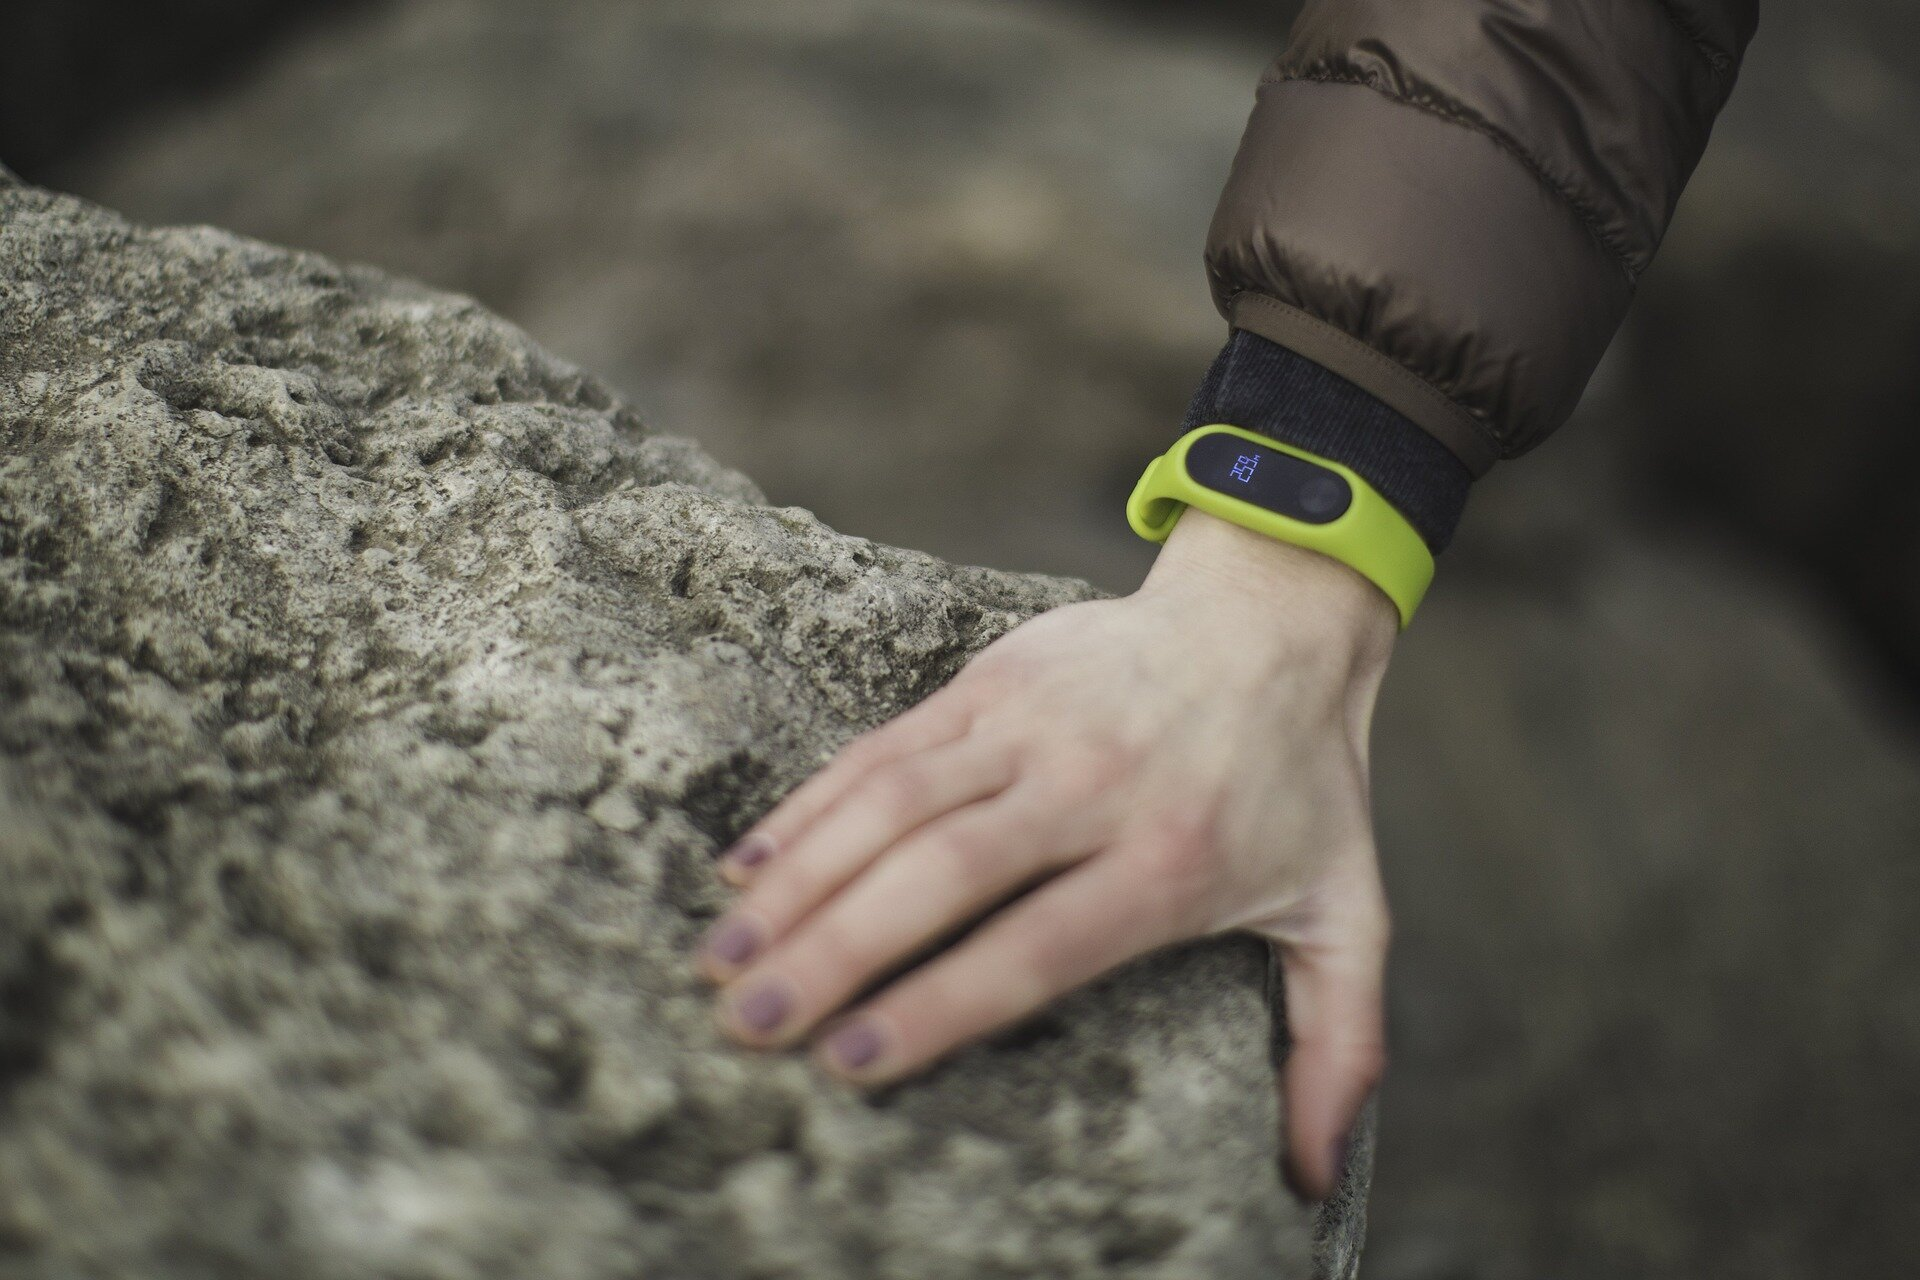 Wearable fitness trackers/step counters help the overweight/obese to shed the pounds: study